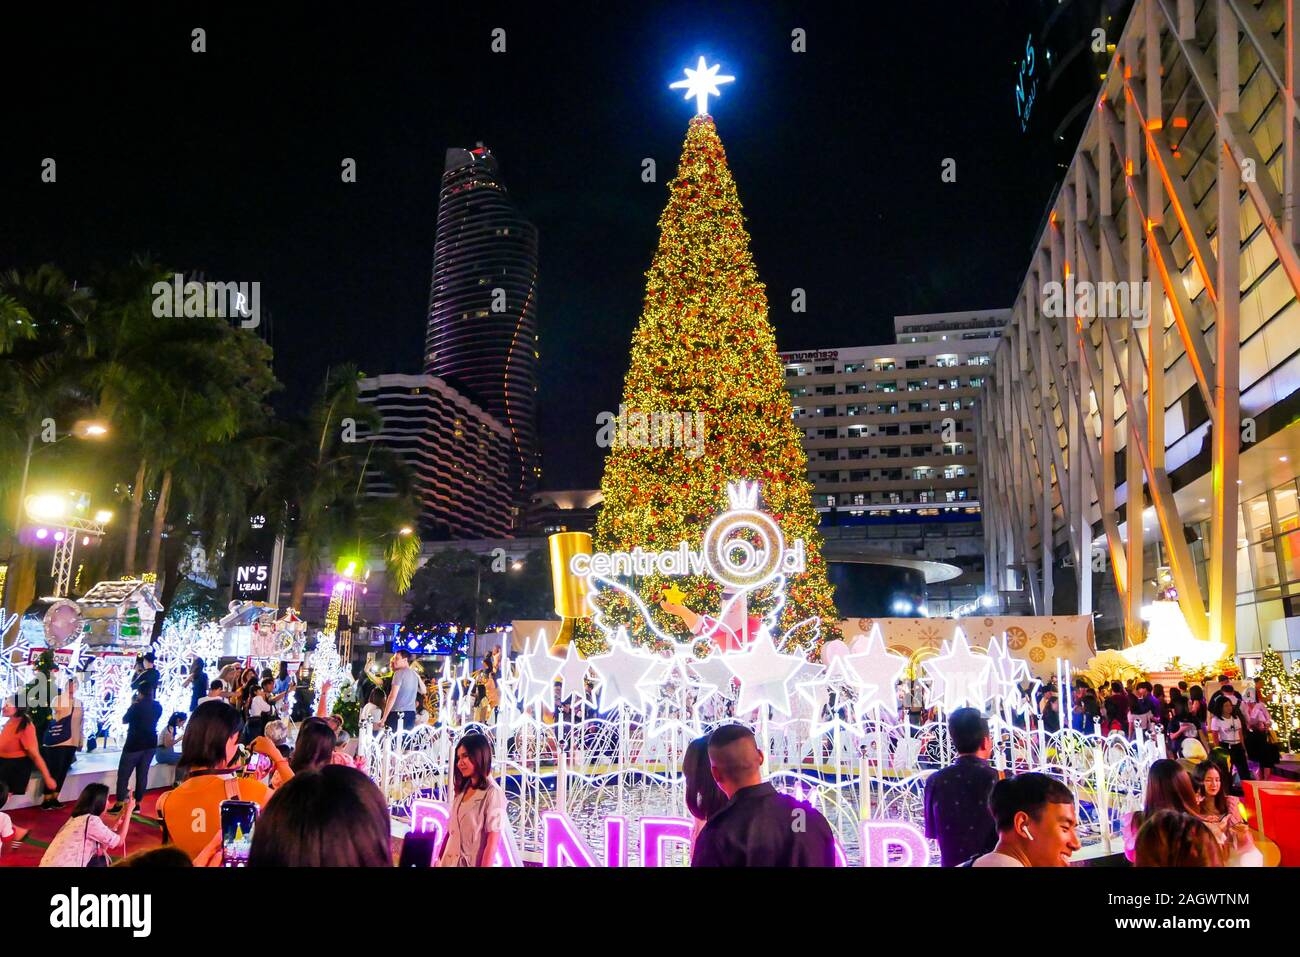 Bangkok Thailand December 13 2019 Merry Christmas And Happy New Year 2020 Event Is Showing A Centralworld The Popular And Large Shopping Mall In Stock Photo Alamy